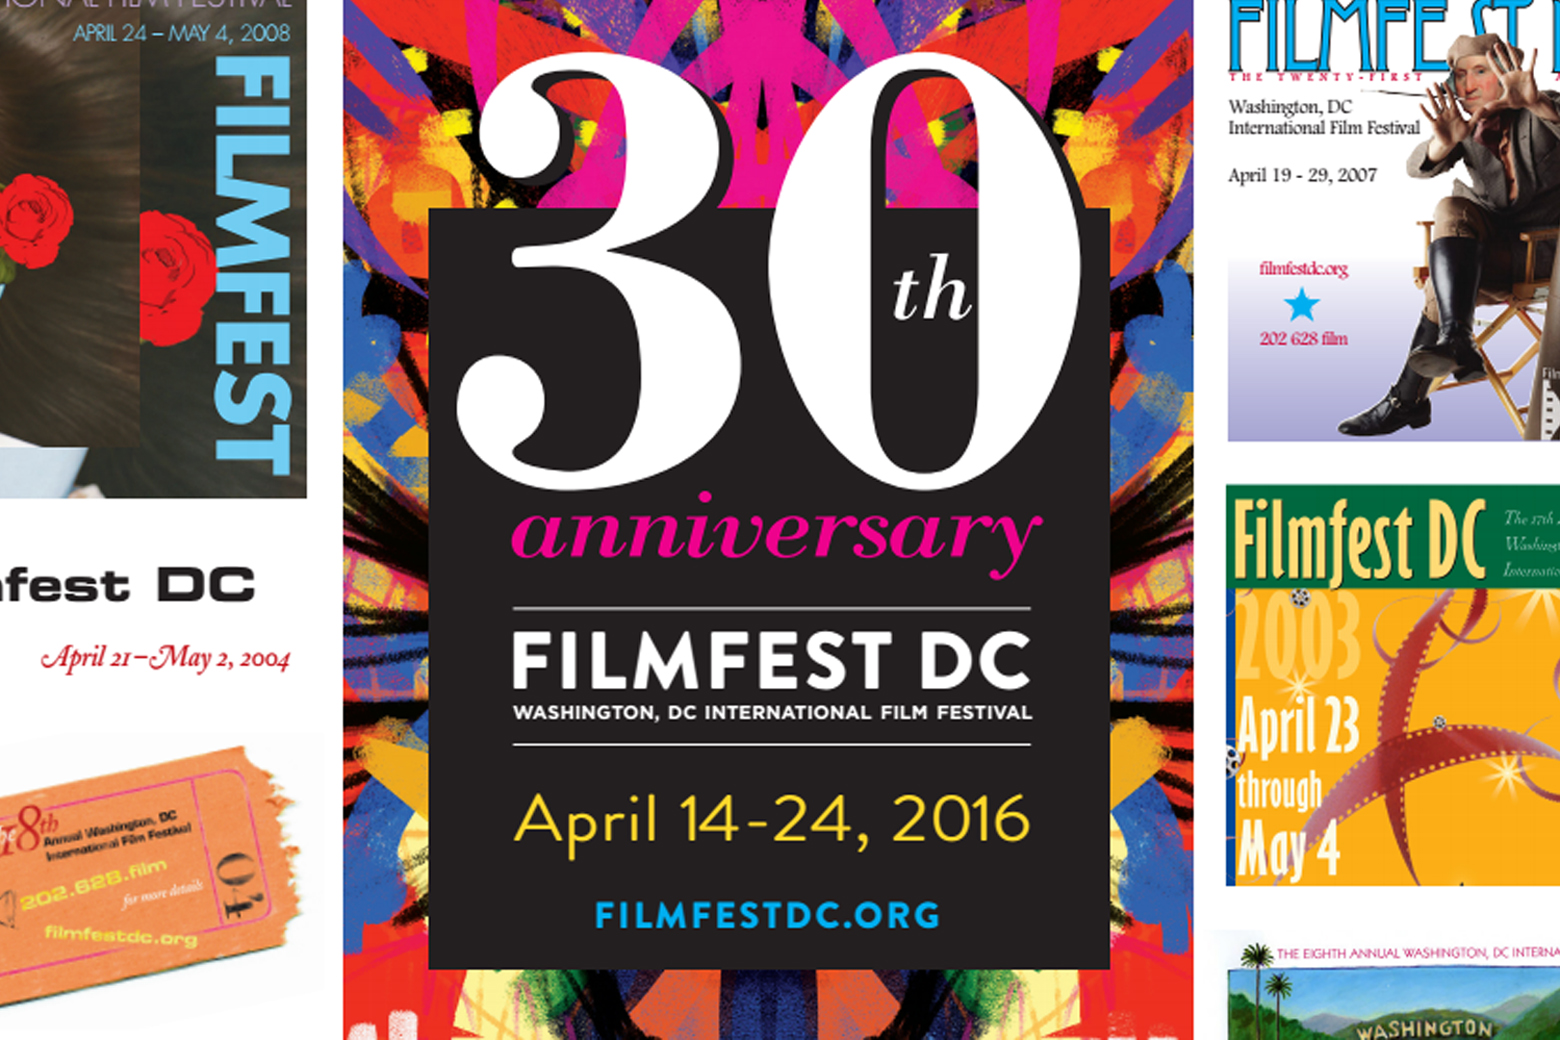 'Arch Campbell & Friends' help celebrate 30 years of Filmfest DC